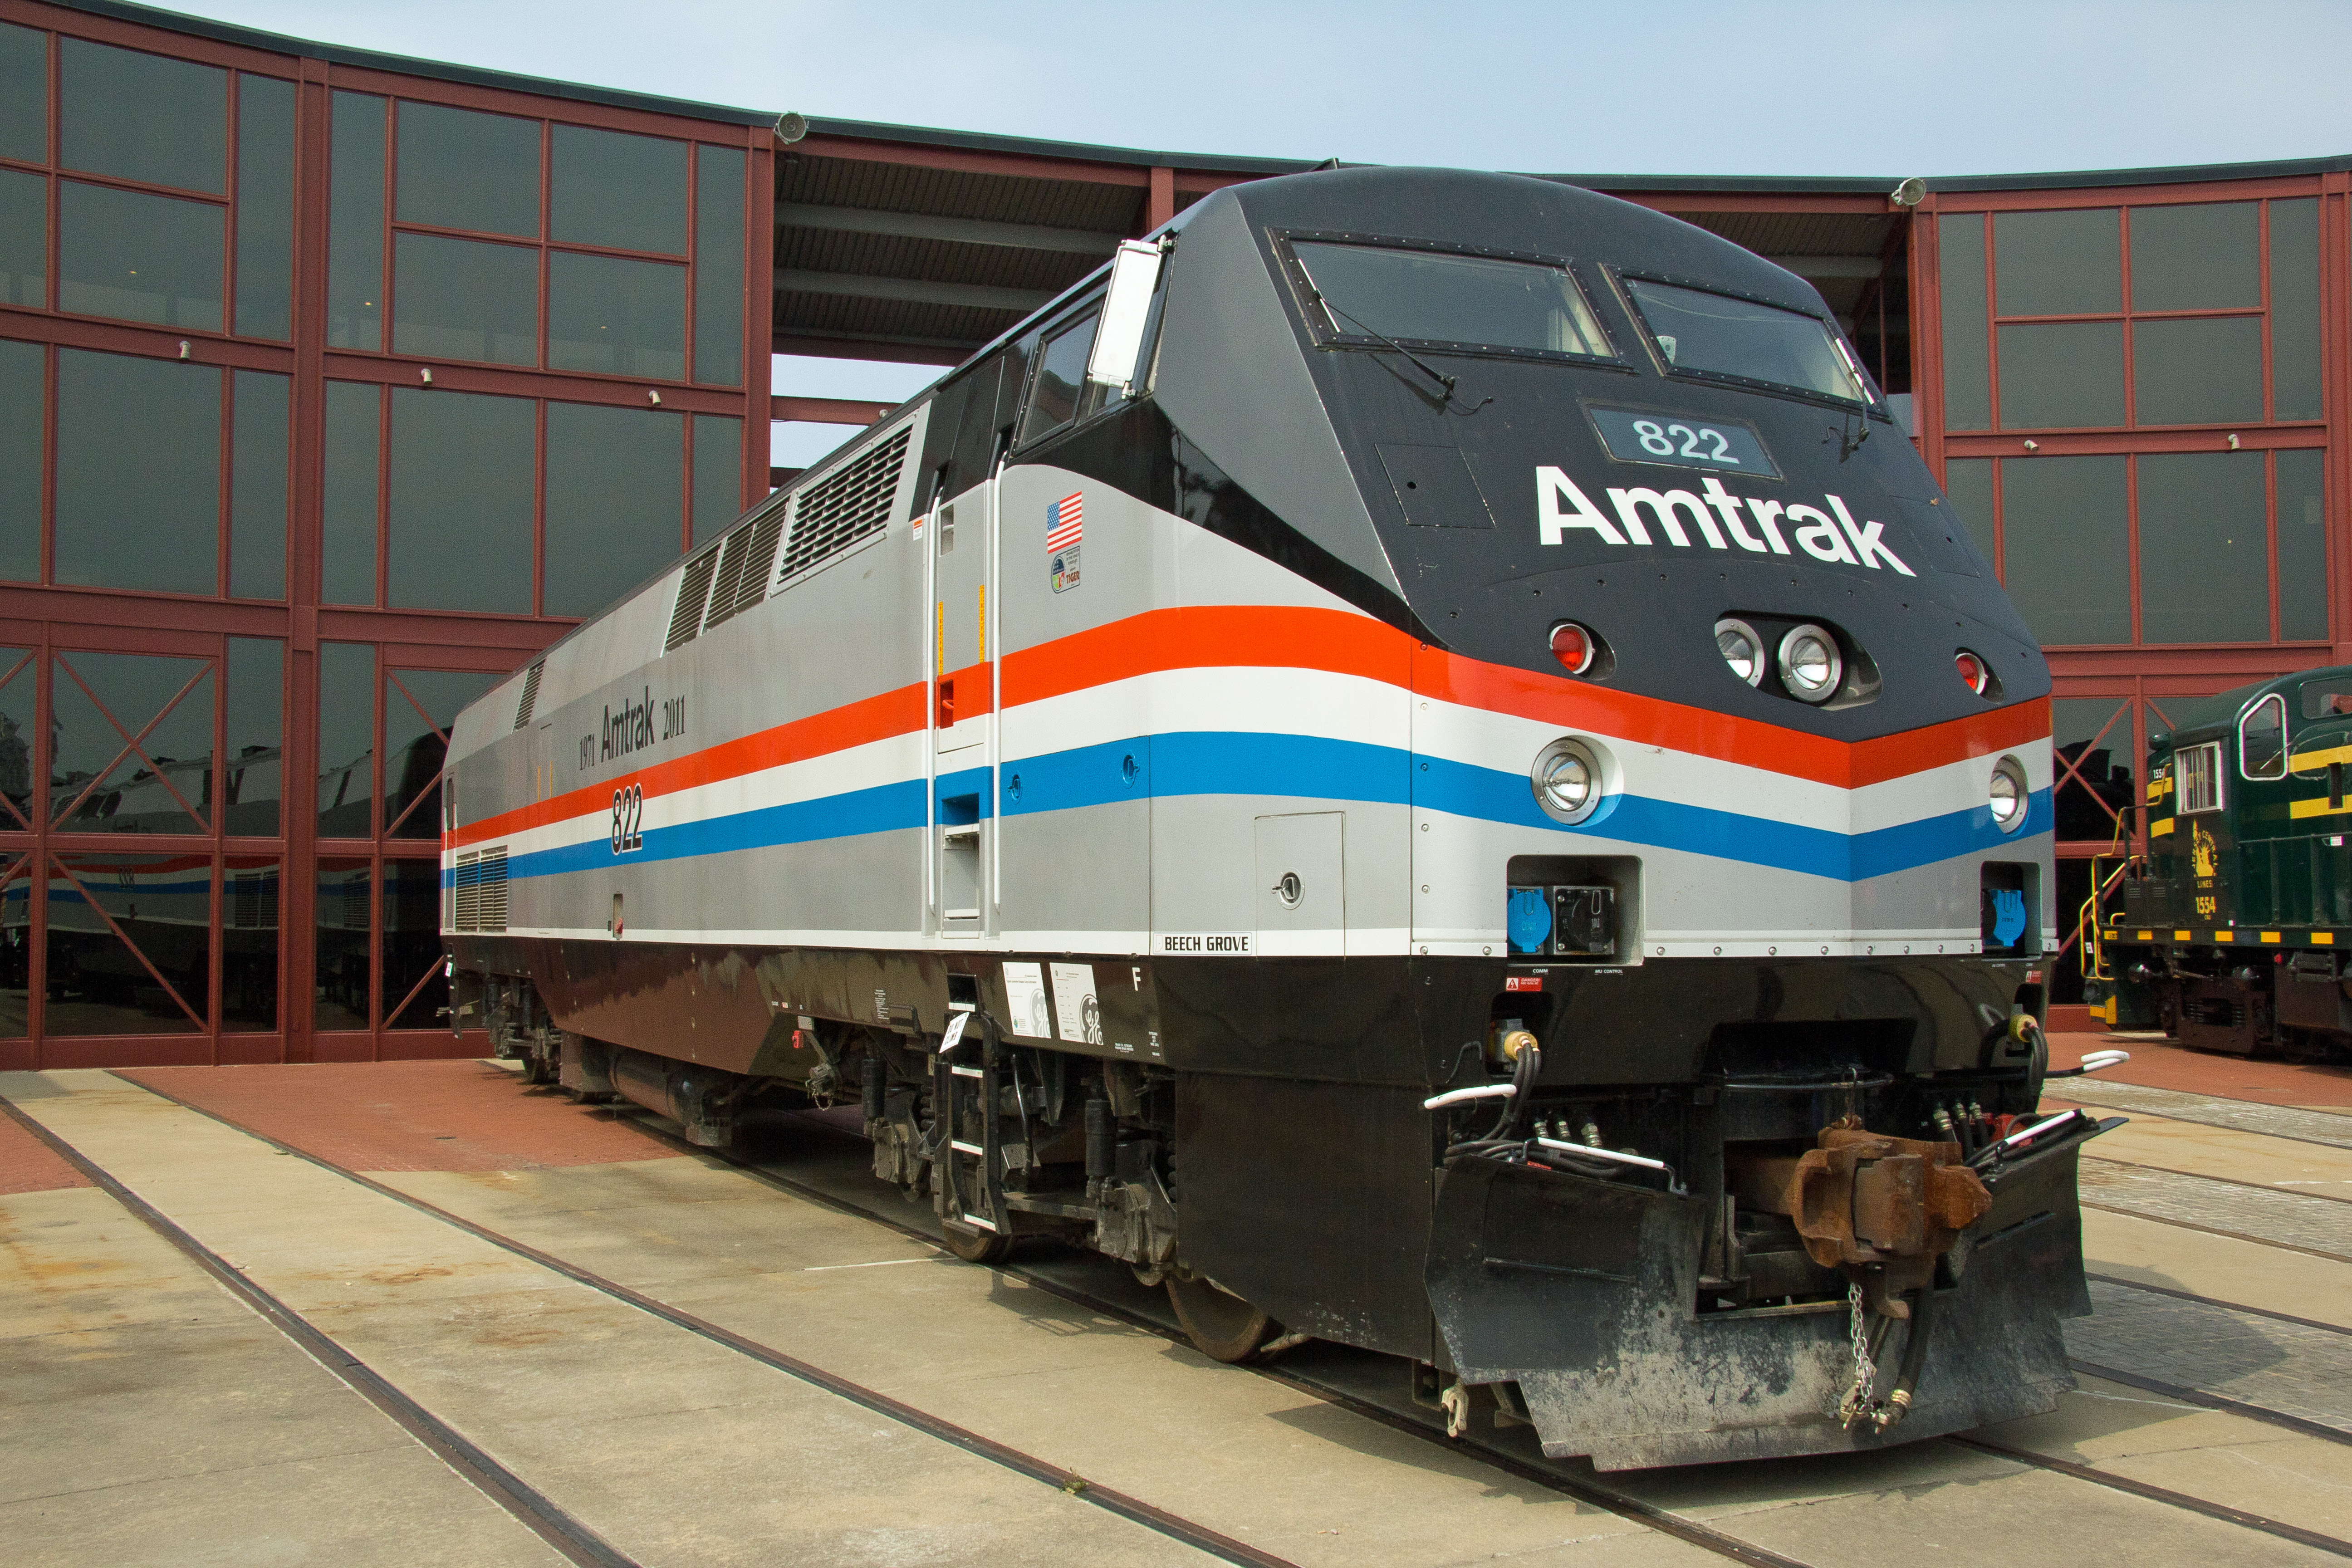 File:Amtrak 822 Phase III Paint Scheme (6121787717).jpg